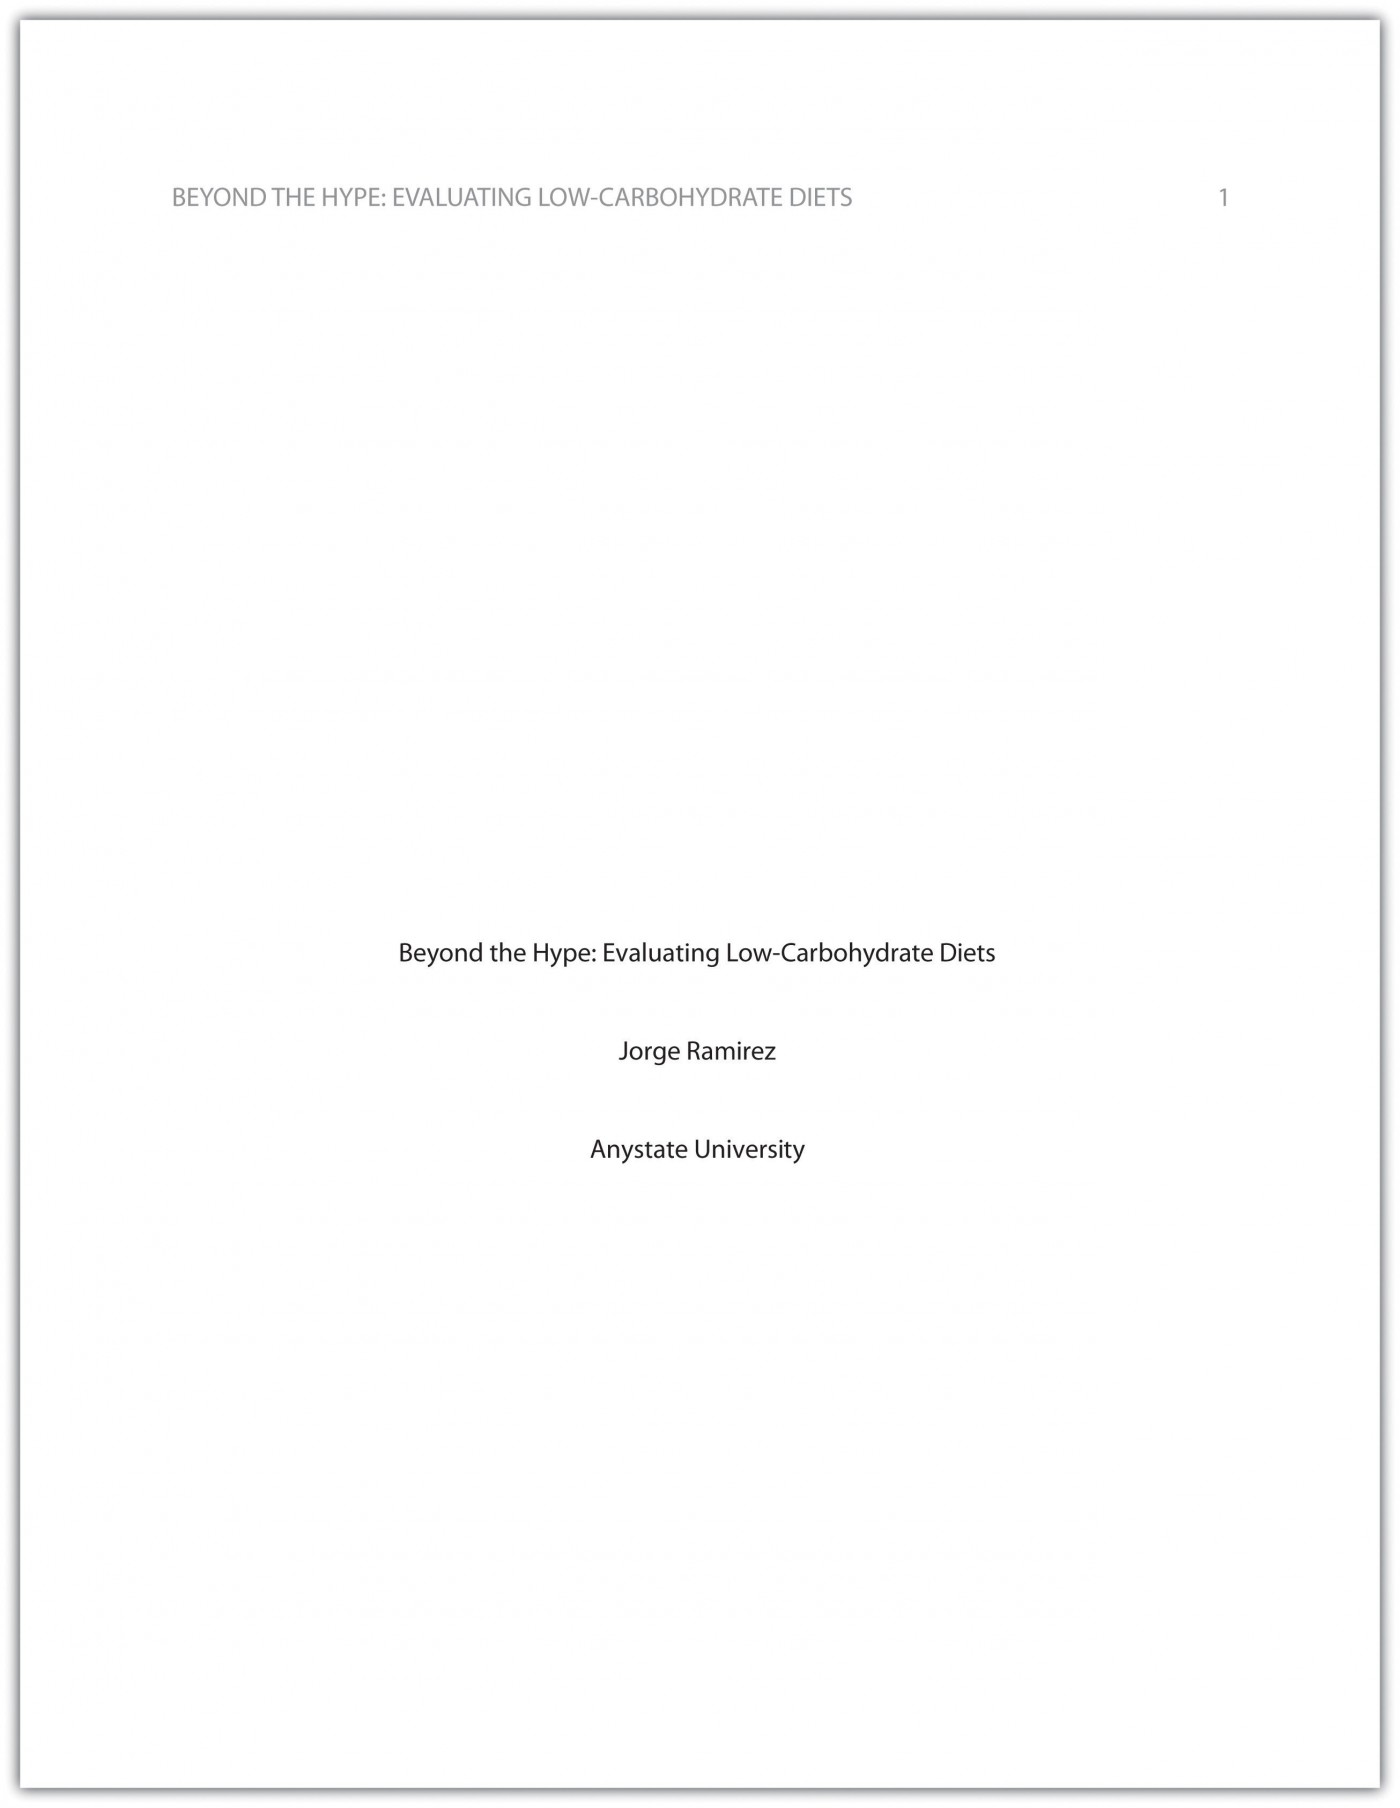 011 Research Paper Formatting Unusual Software In Chicago Style Format Apa 1400